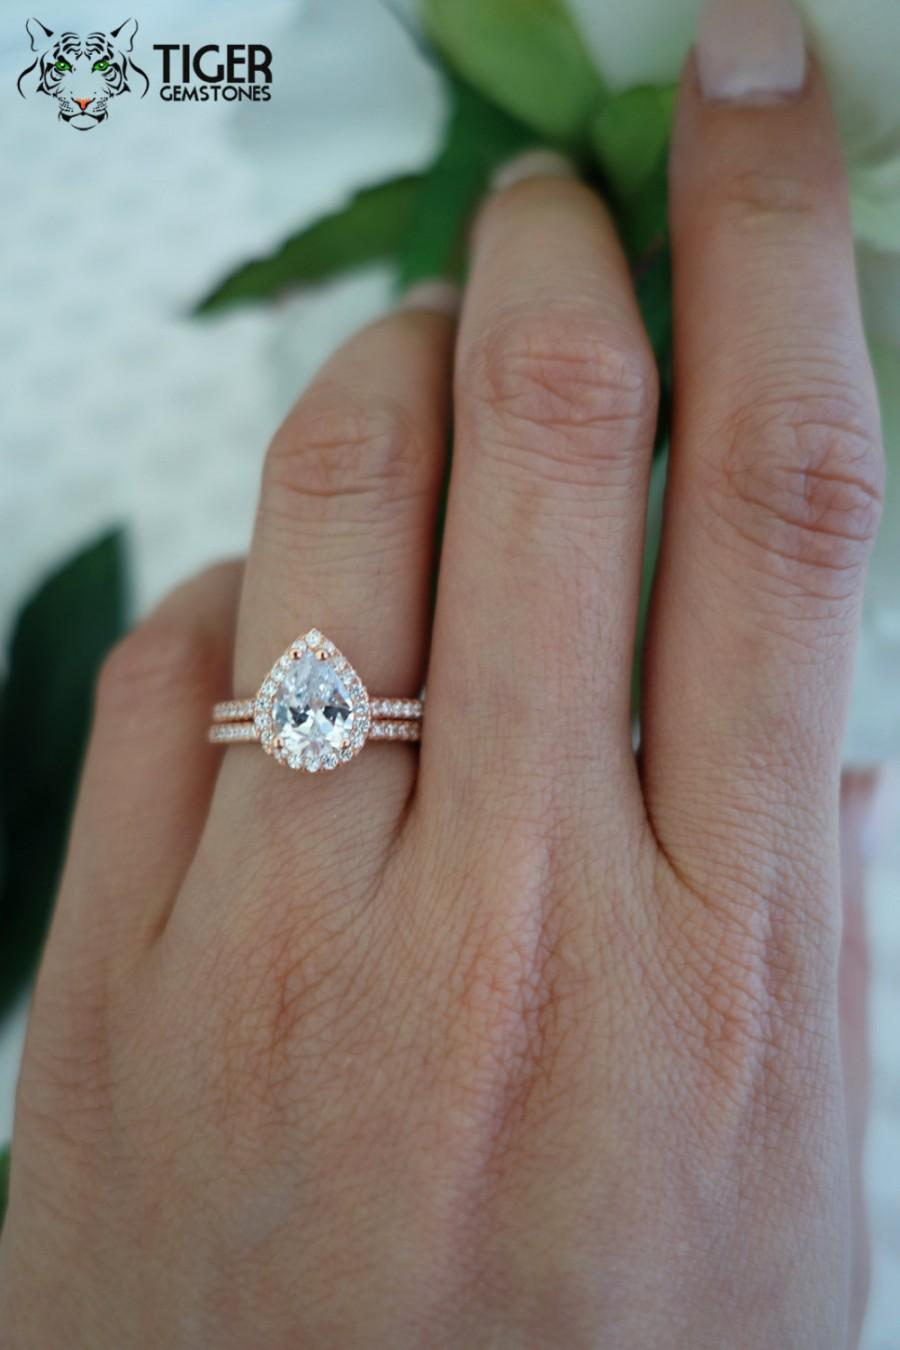 pear wedding blog diamond engagement diamonds ritani rings ring celebrity heigl shaped famous katherine